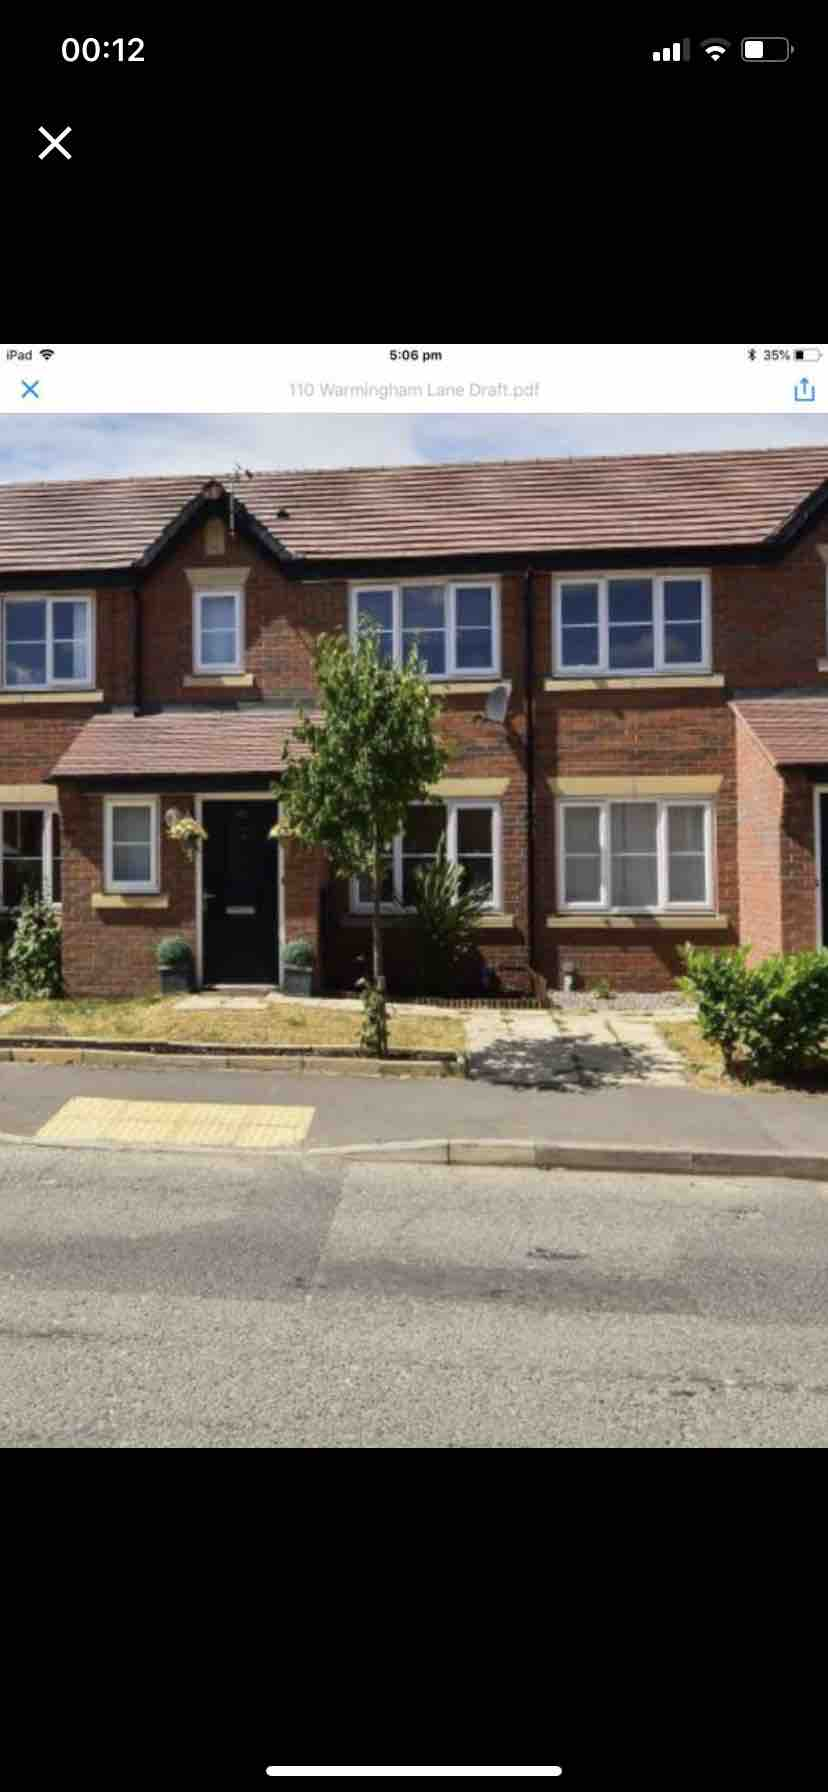 3 bed house 1x double room to rent image